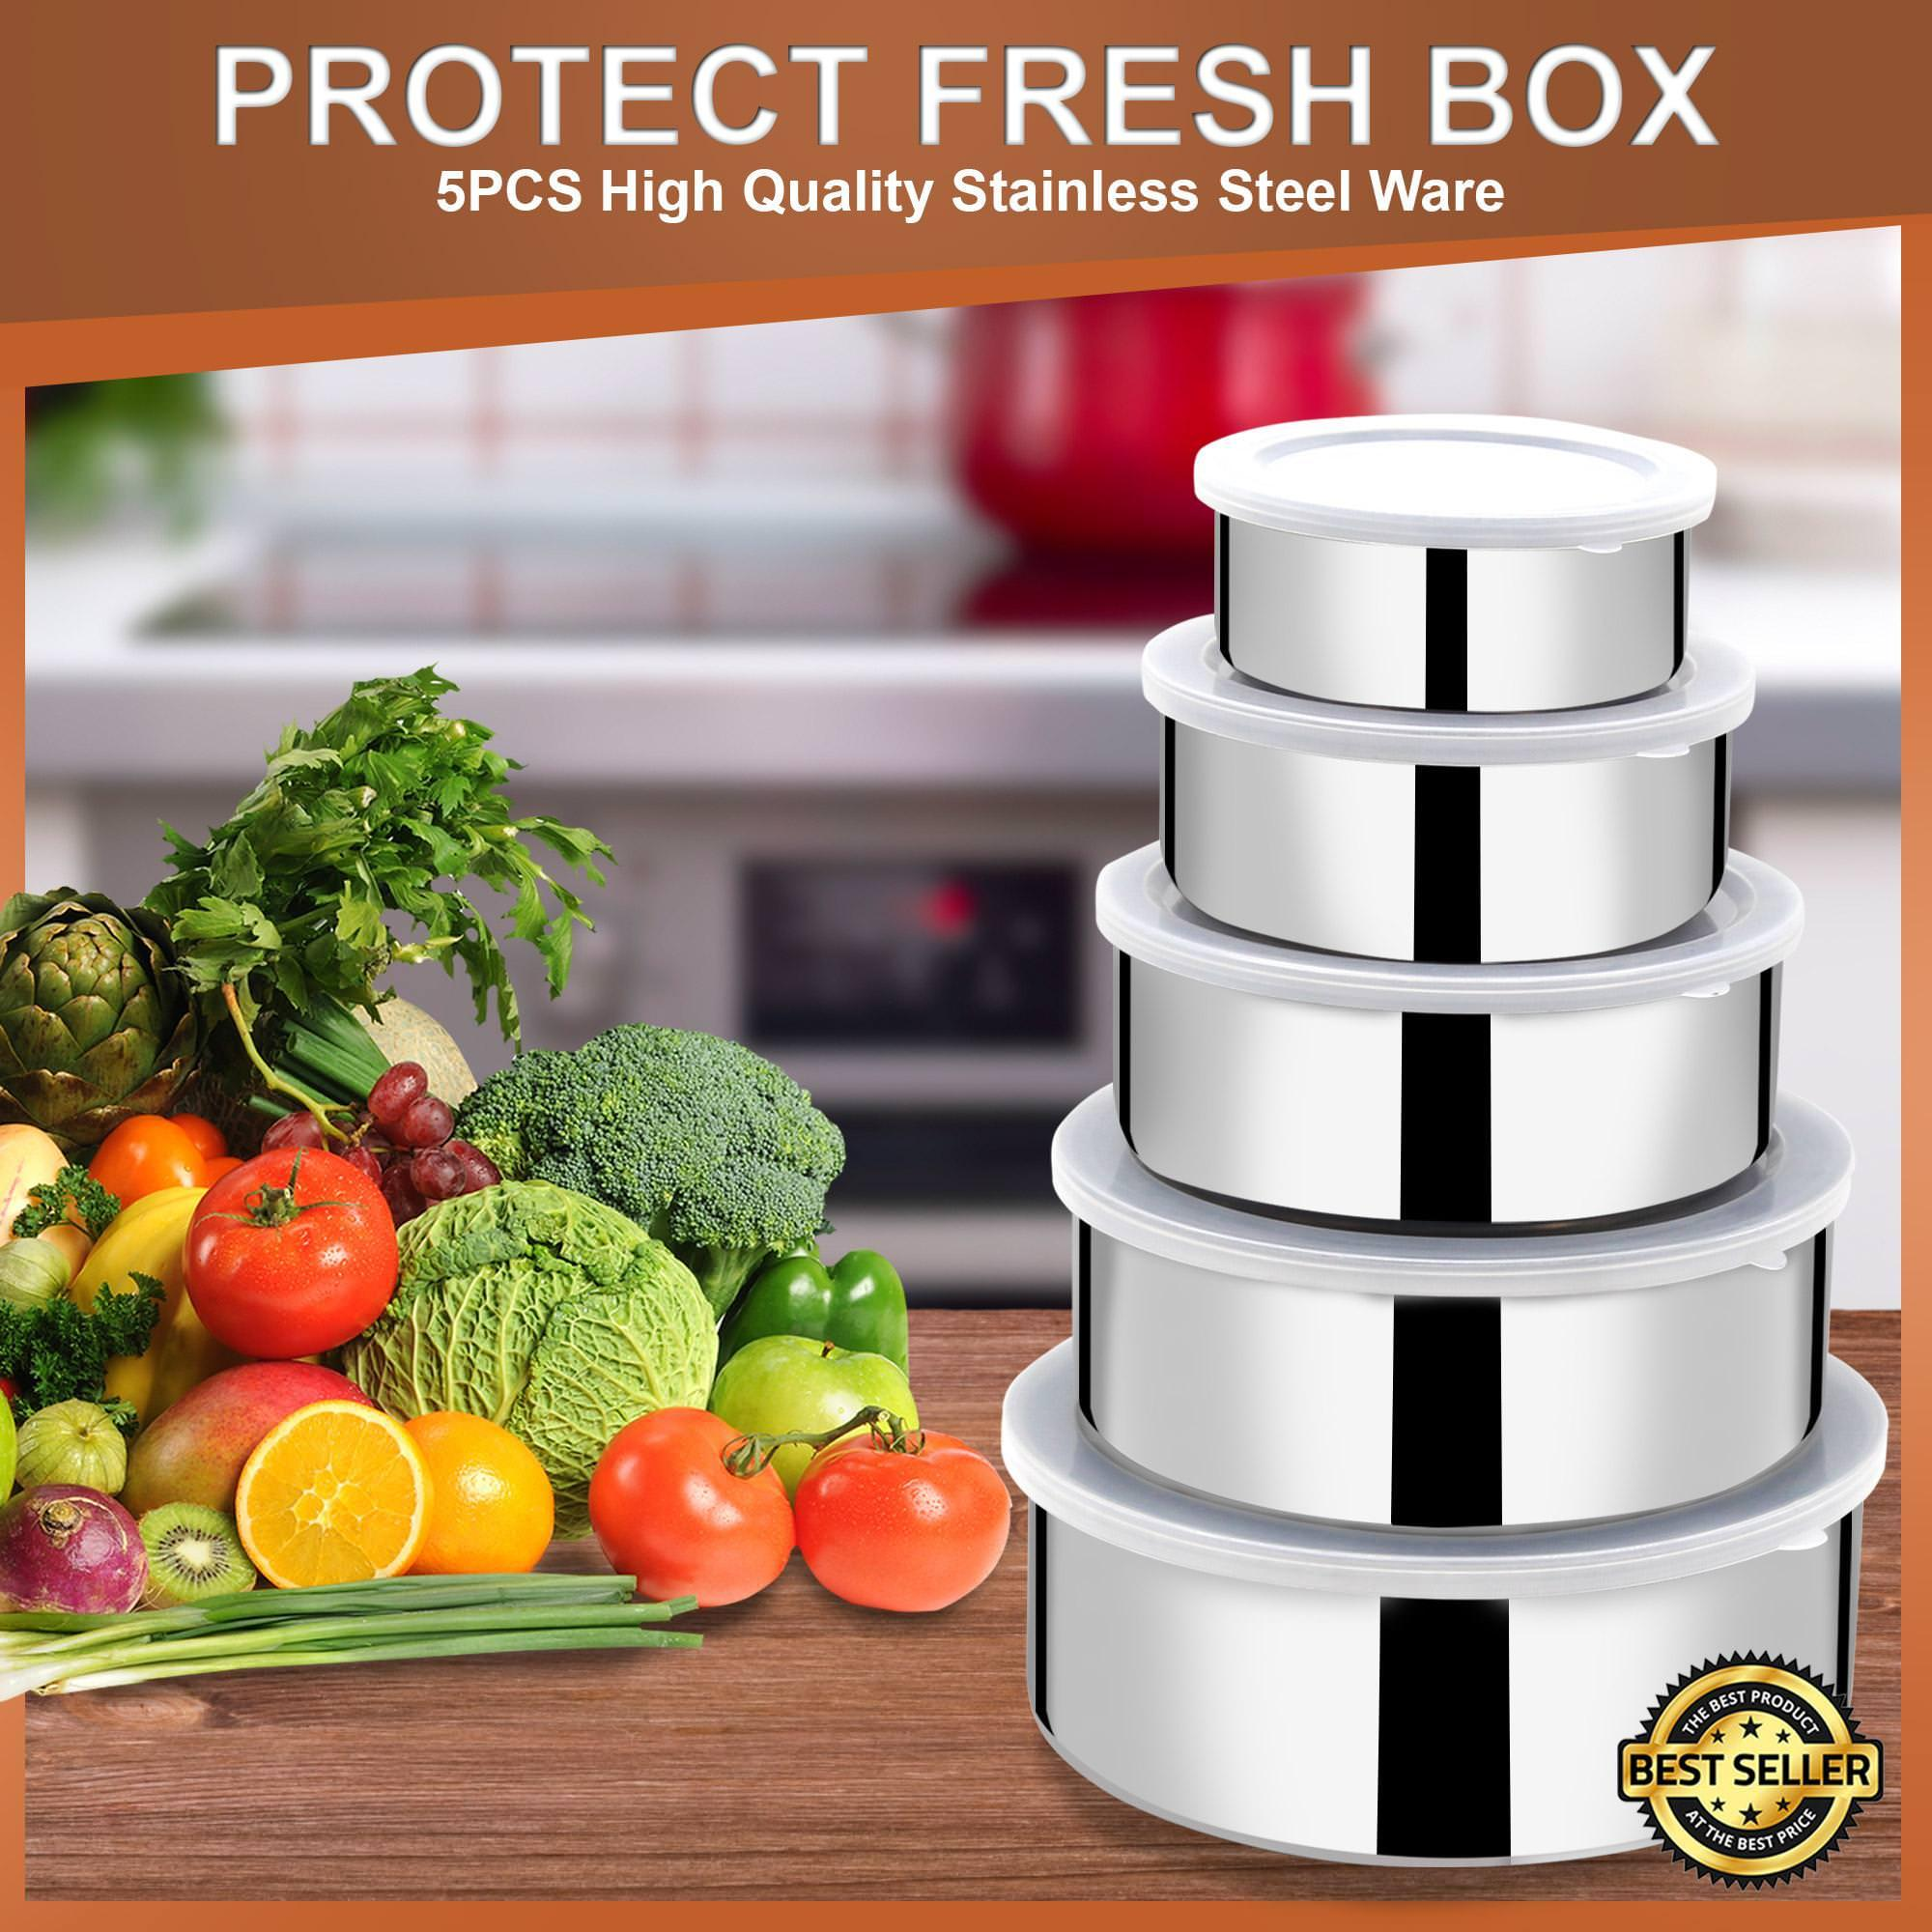 Protect Fresh Box 5 Pieces High Quality Stainless Steel Ware Set By Shop Easy Superstore.